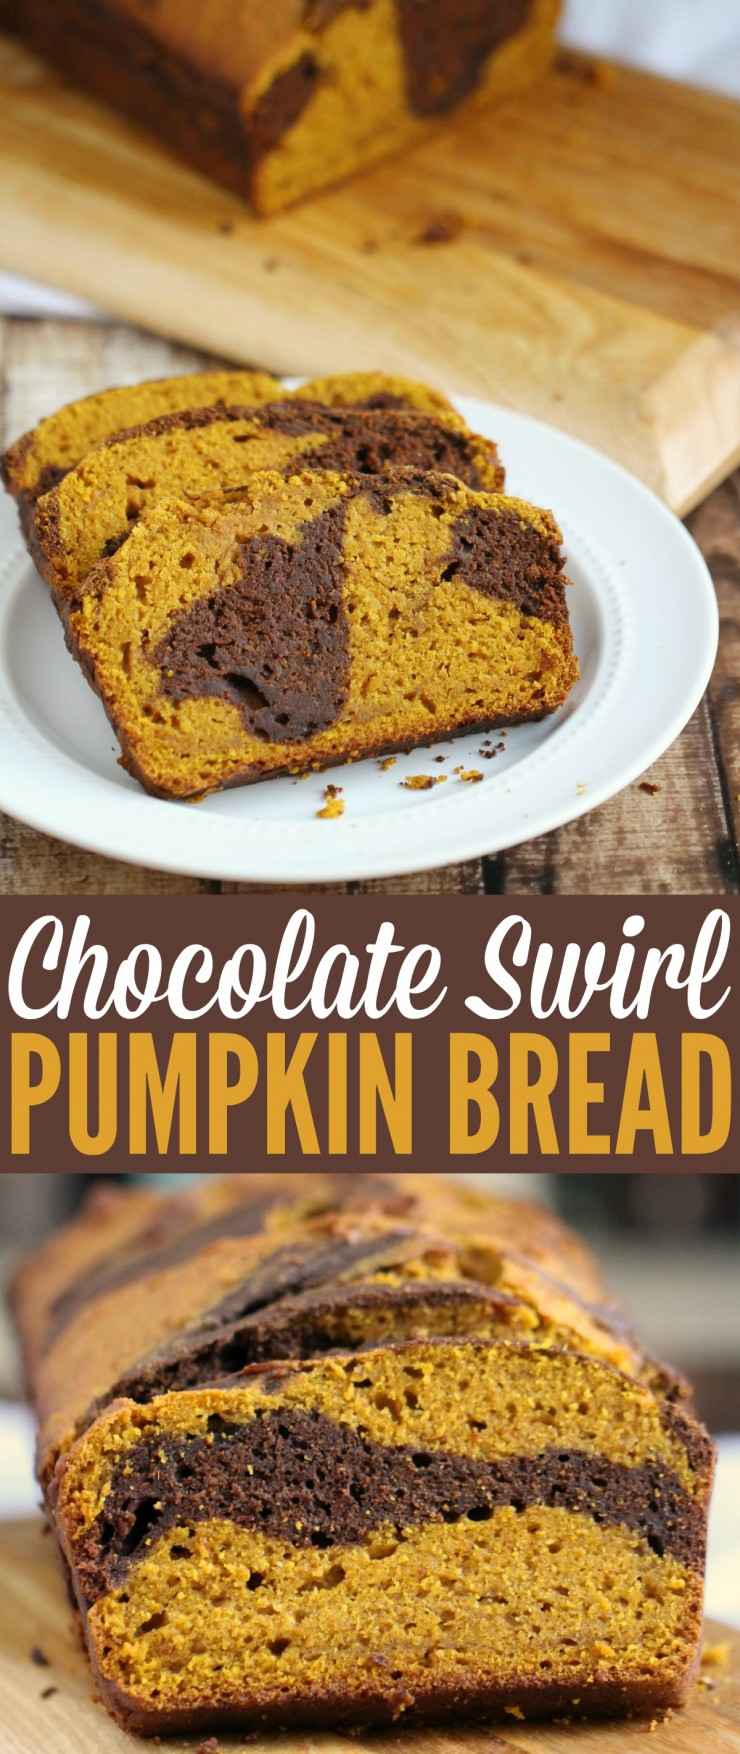 This Chocolate Swirl Pumpkin Bread is a wonderful fall dessert perfect for serving on Thanksgiving!